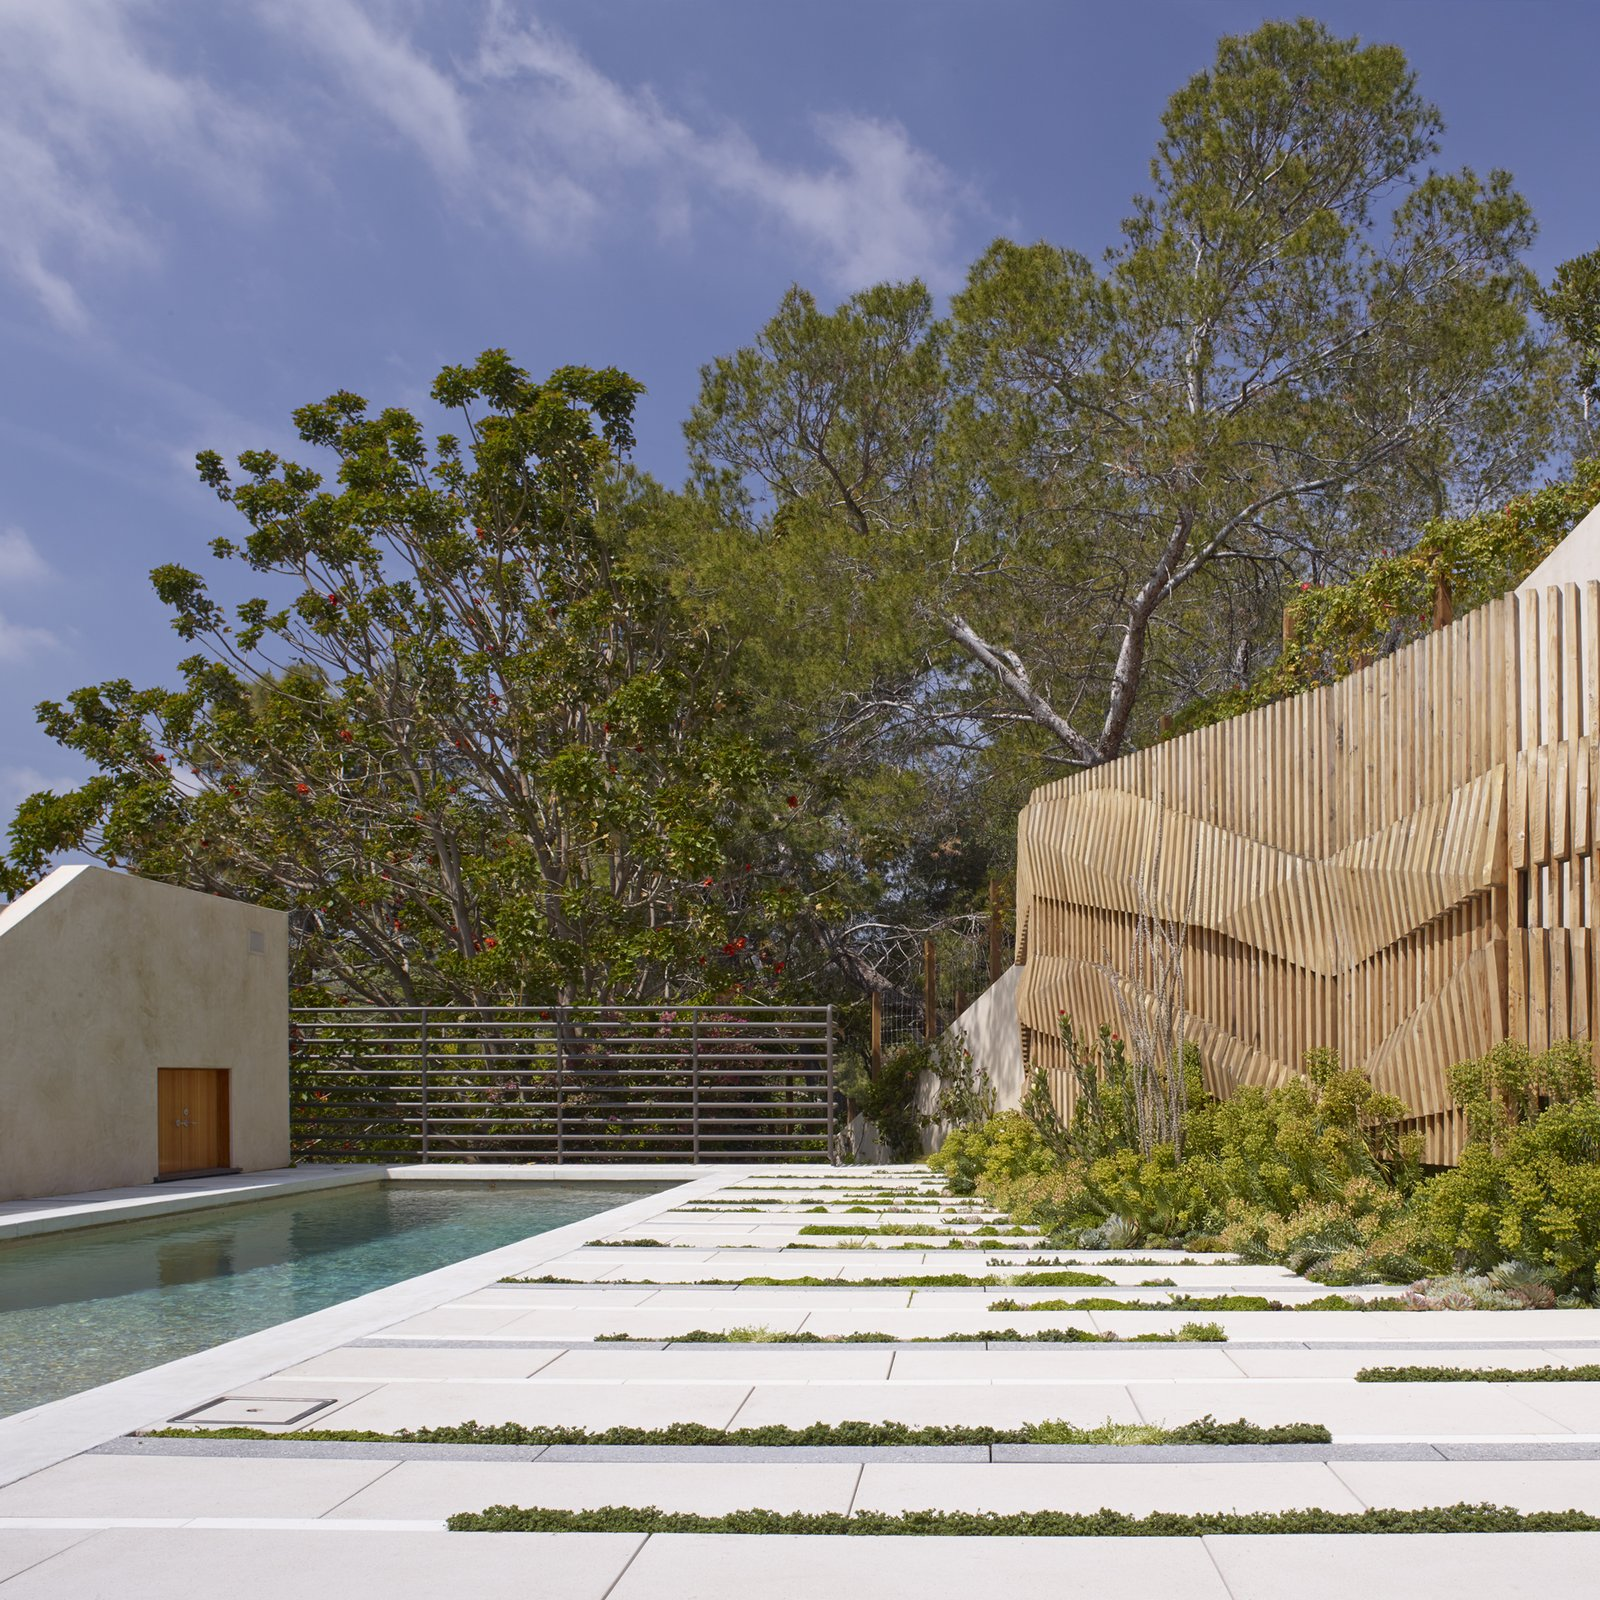 30 Best Modern Fences Collection of 31 Photos by William Lamb Dwell